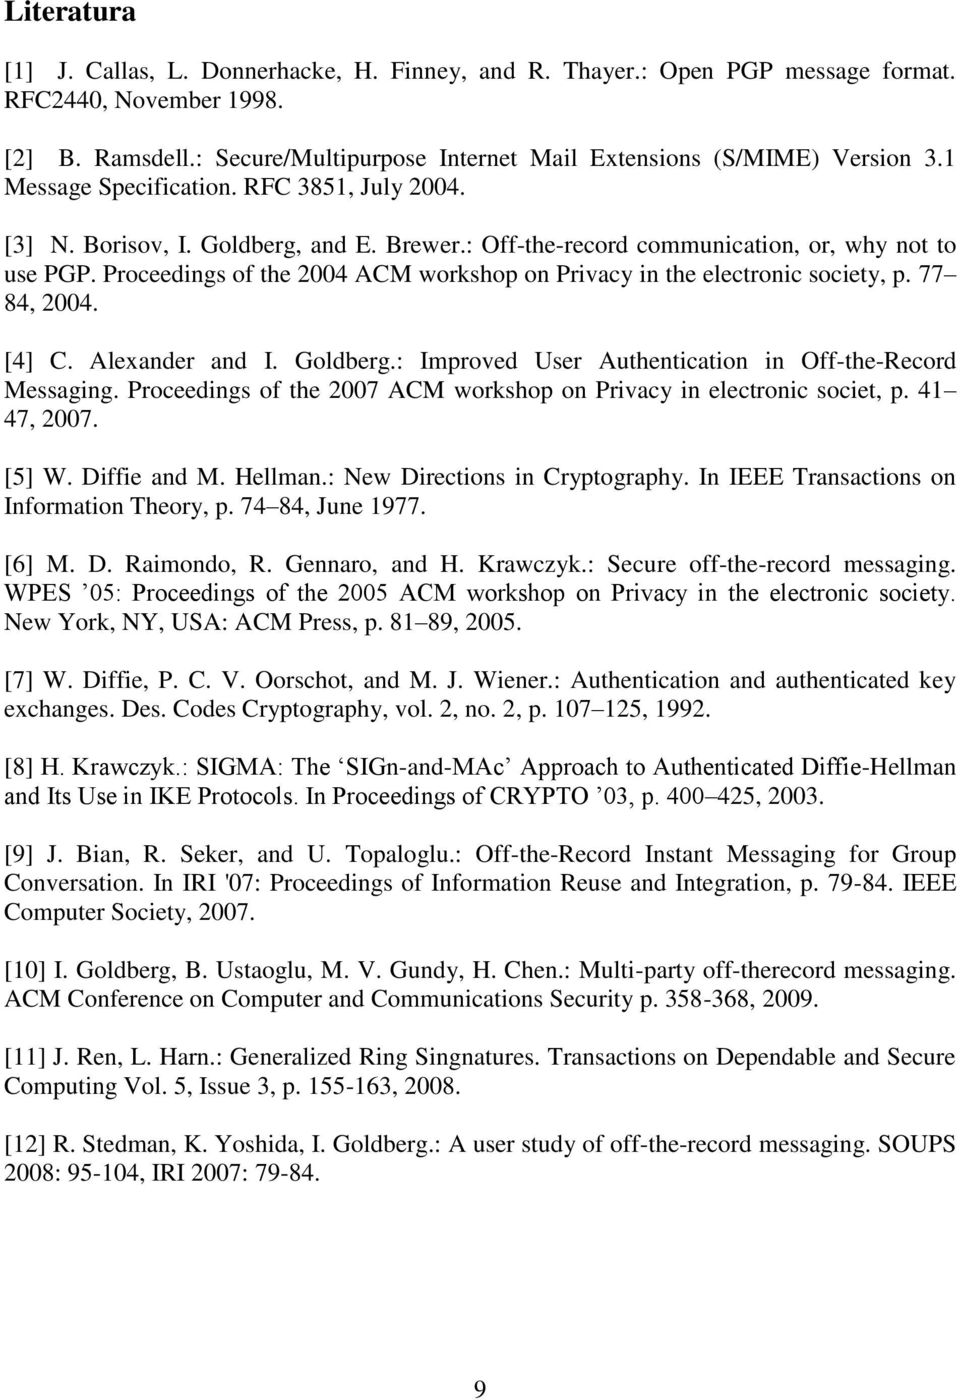 Proceedings of the 2004 ACM workshop on Privacy in the electronic society, p. 77 84, 2004. [4] C. Alexander and I. Goldberg.: Improved User Authentication in Off-the-Record Messaging.